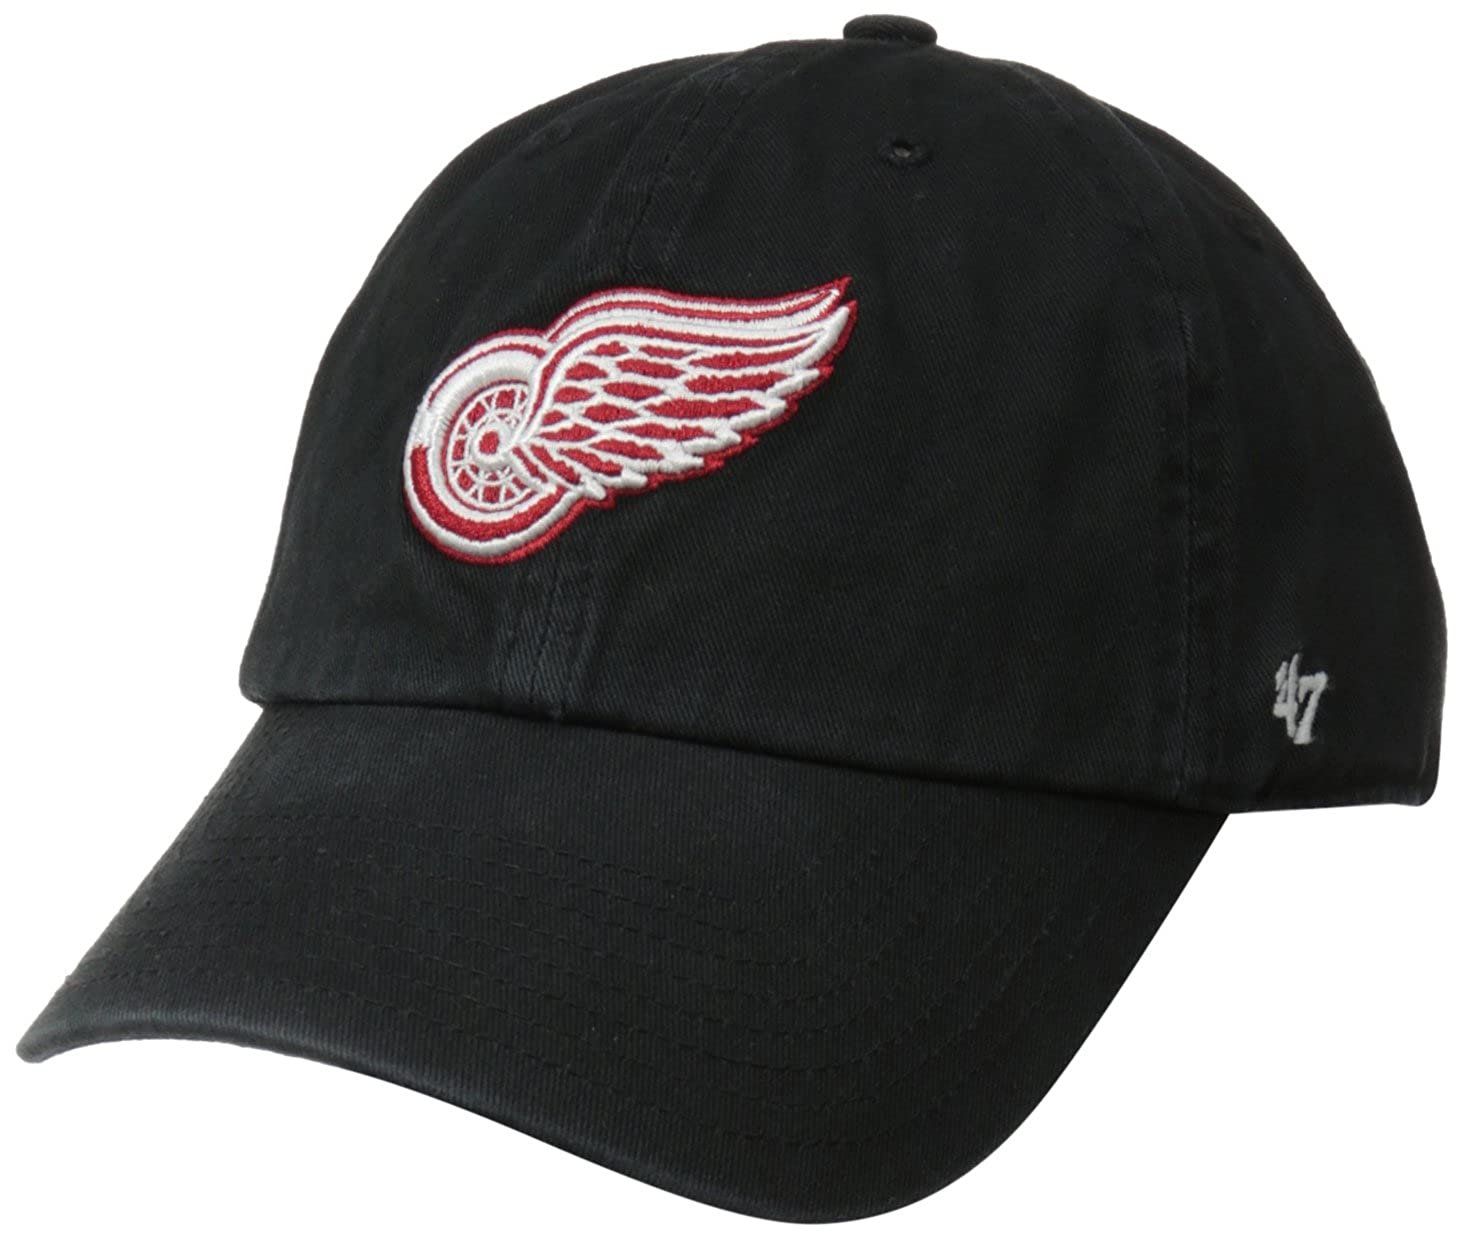 '47 Brand Detroit Red Wings Clean Up Baseball Cap - Black One Size Twins Enterprise/47 Brand H-RGW05GWS-BK-OSF